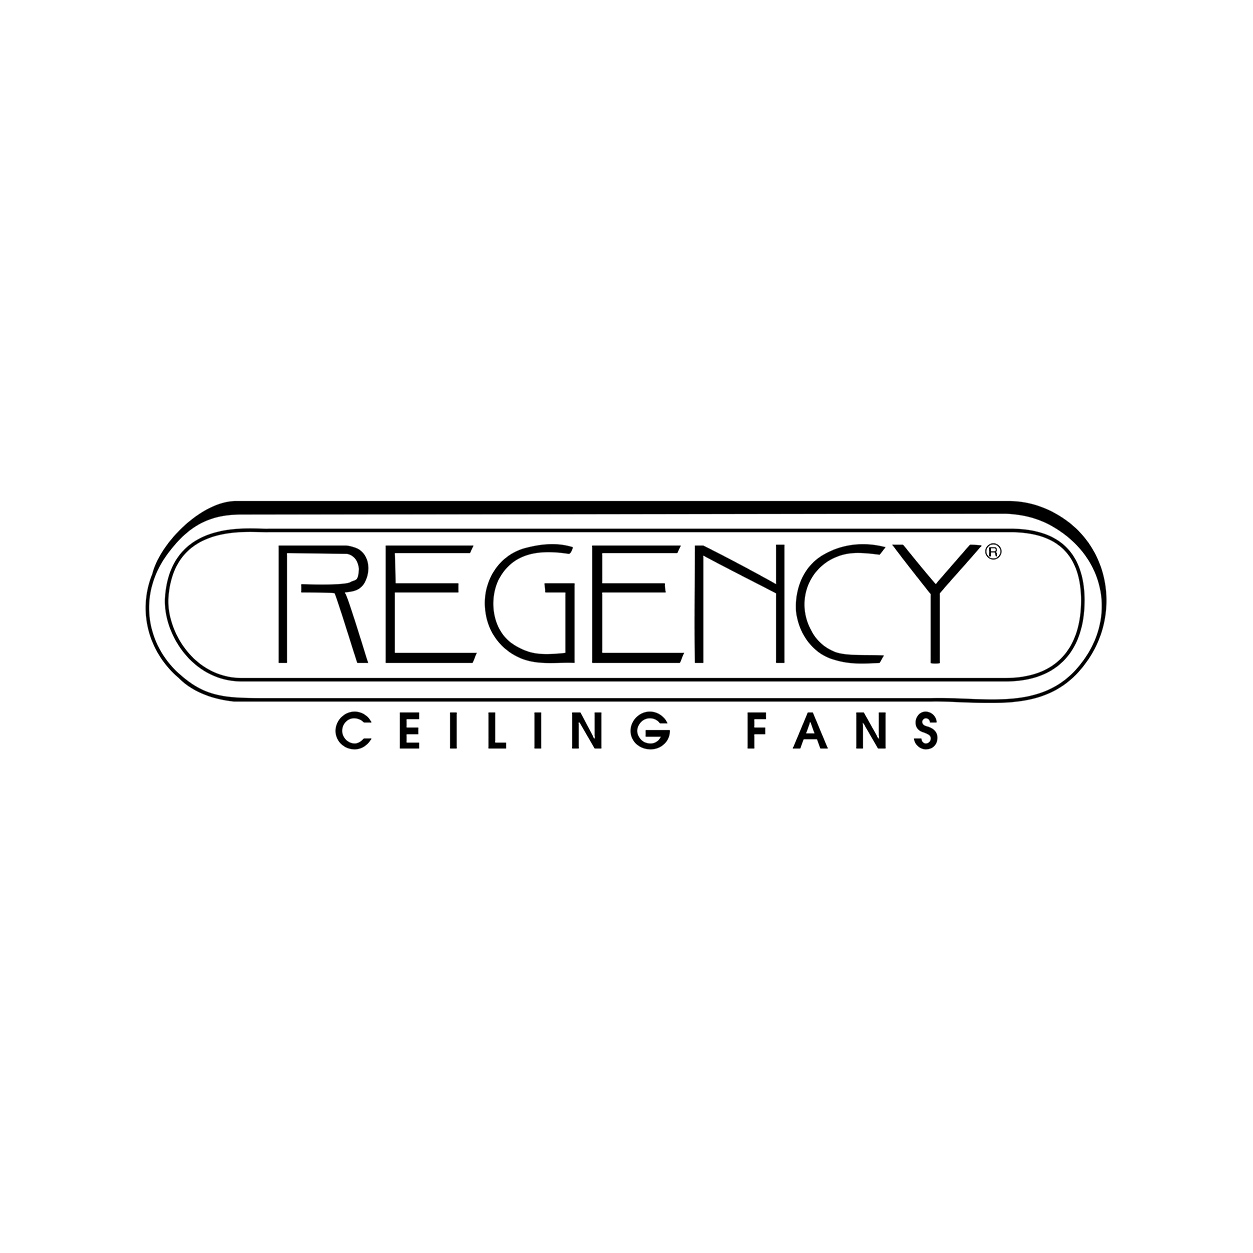 Regency Ceiling Fans - Ceiling fansBladesLight kits & Accessories